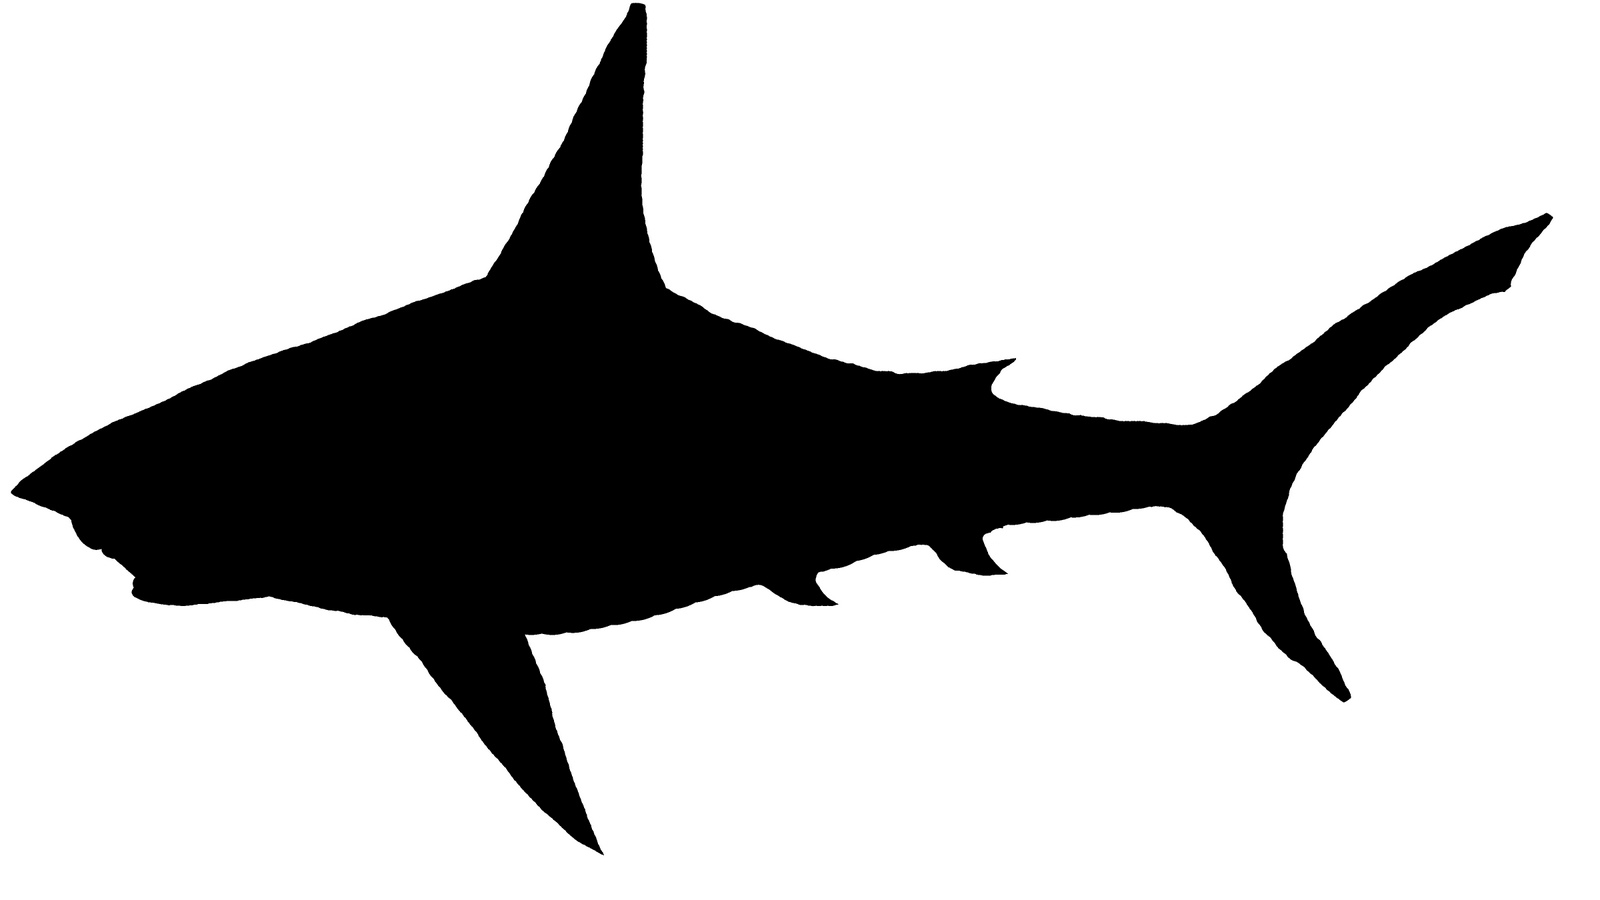 Shark Sil   Free Images At Clker Com   Vector Clip Art Online Royalty